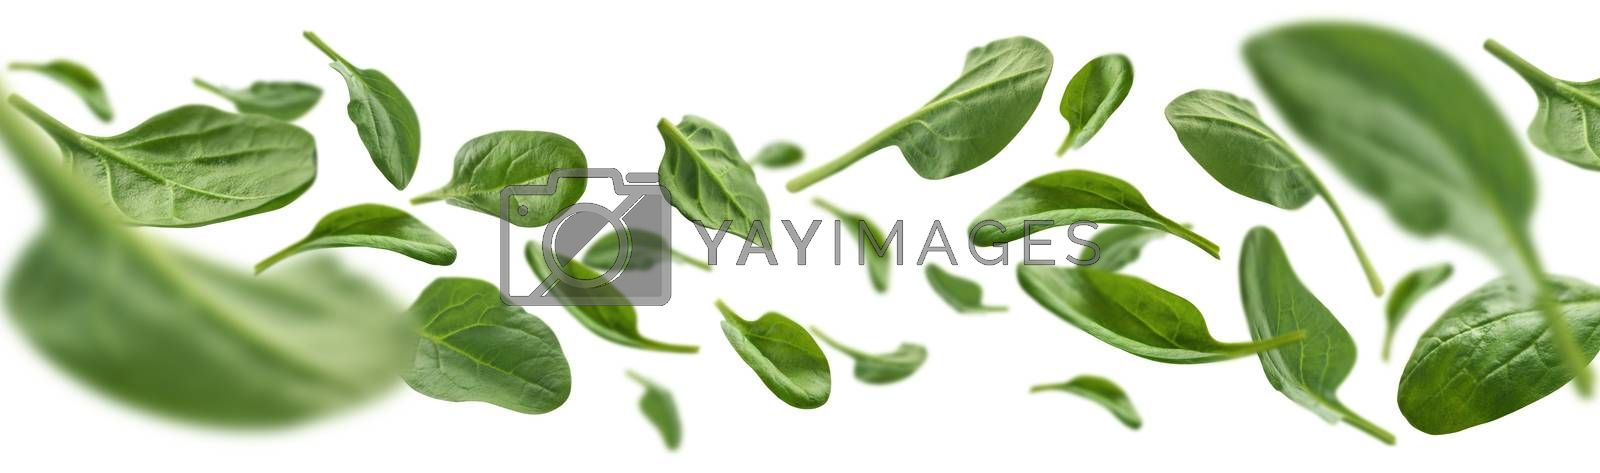 Green spinach leaves levitate on a white background.